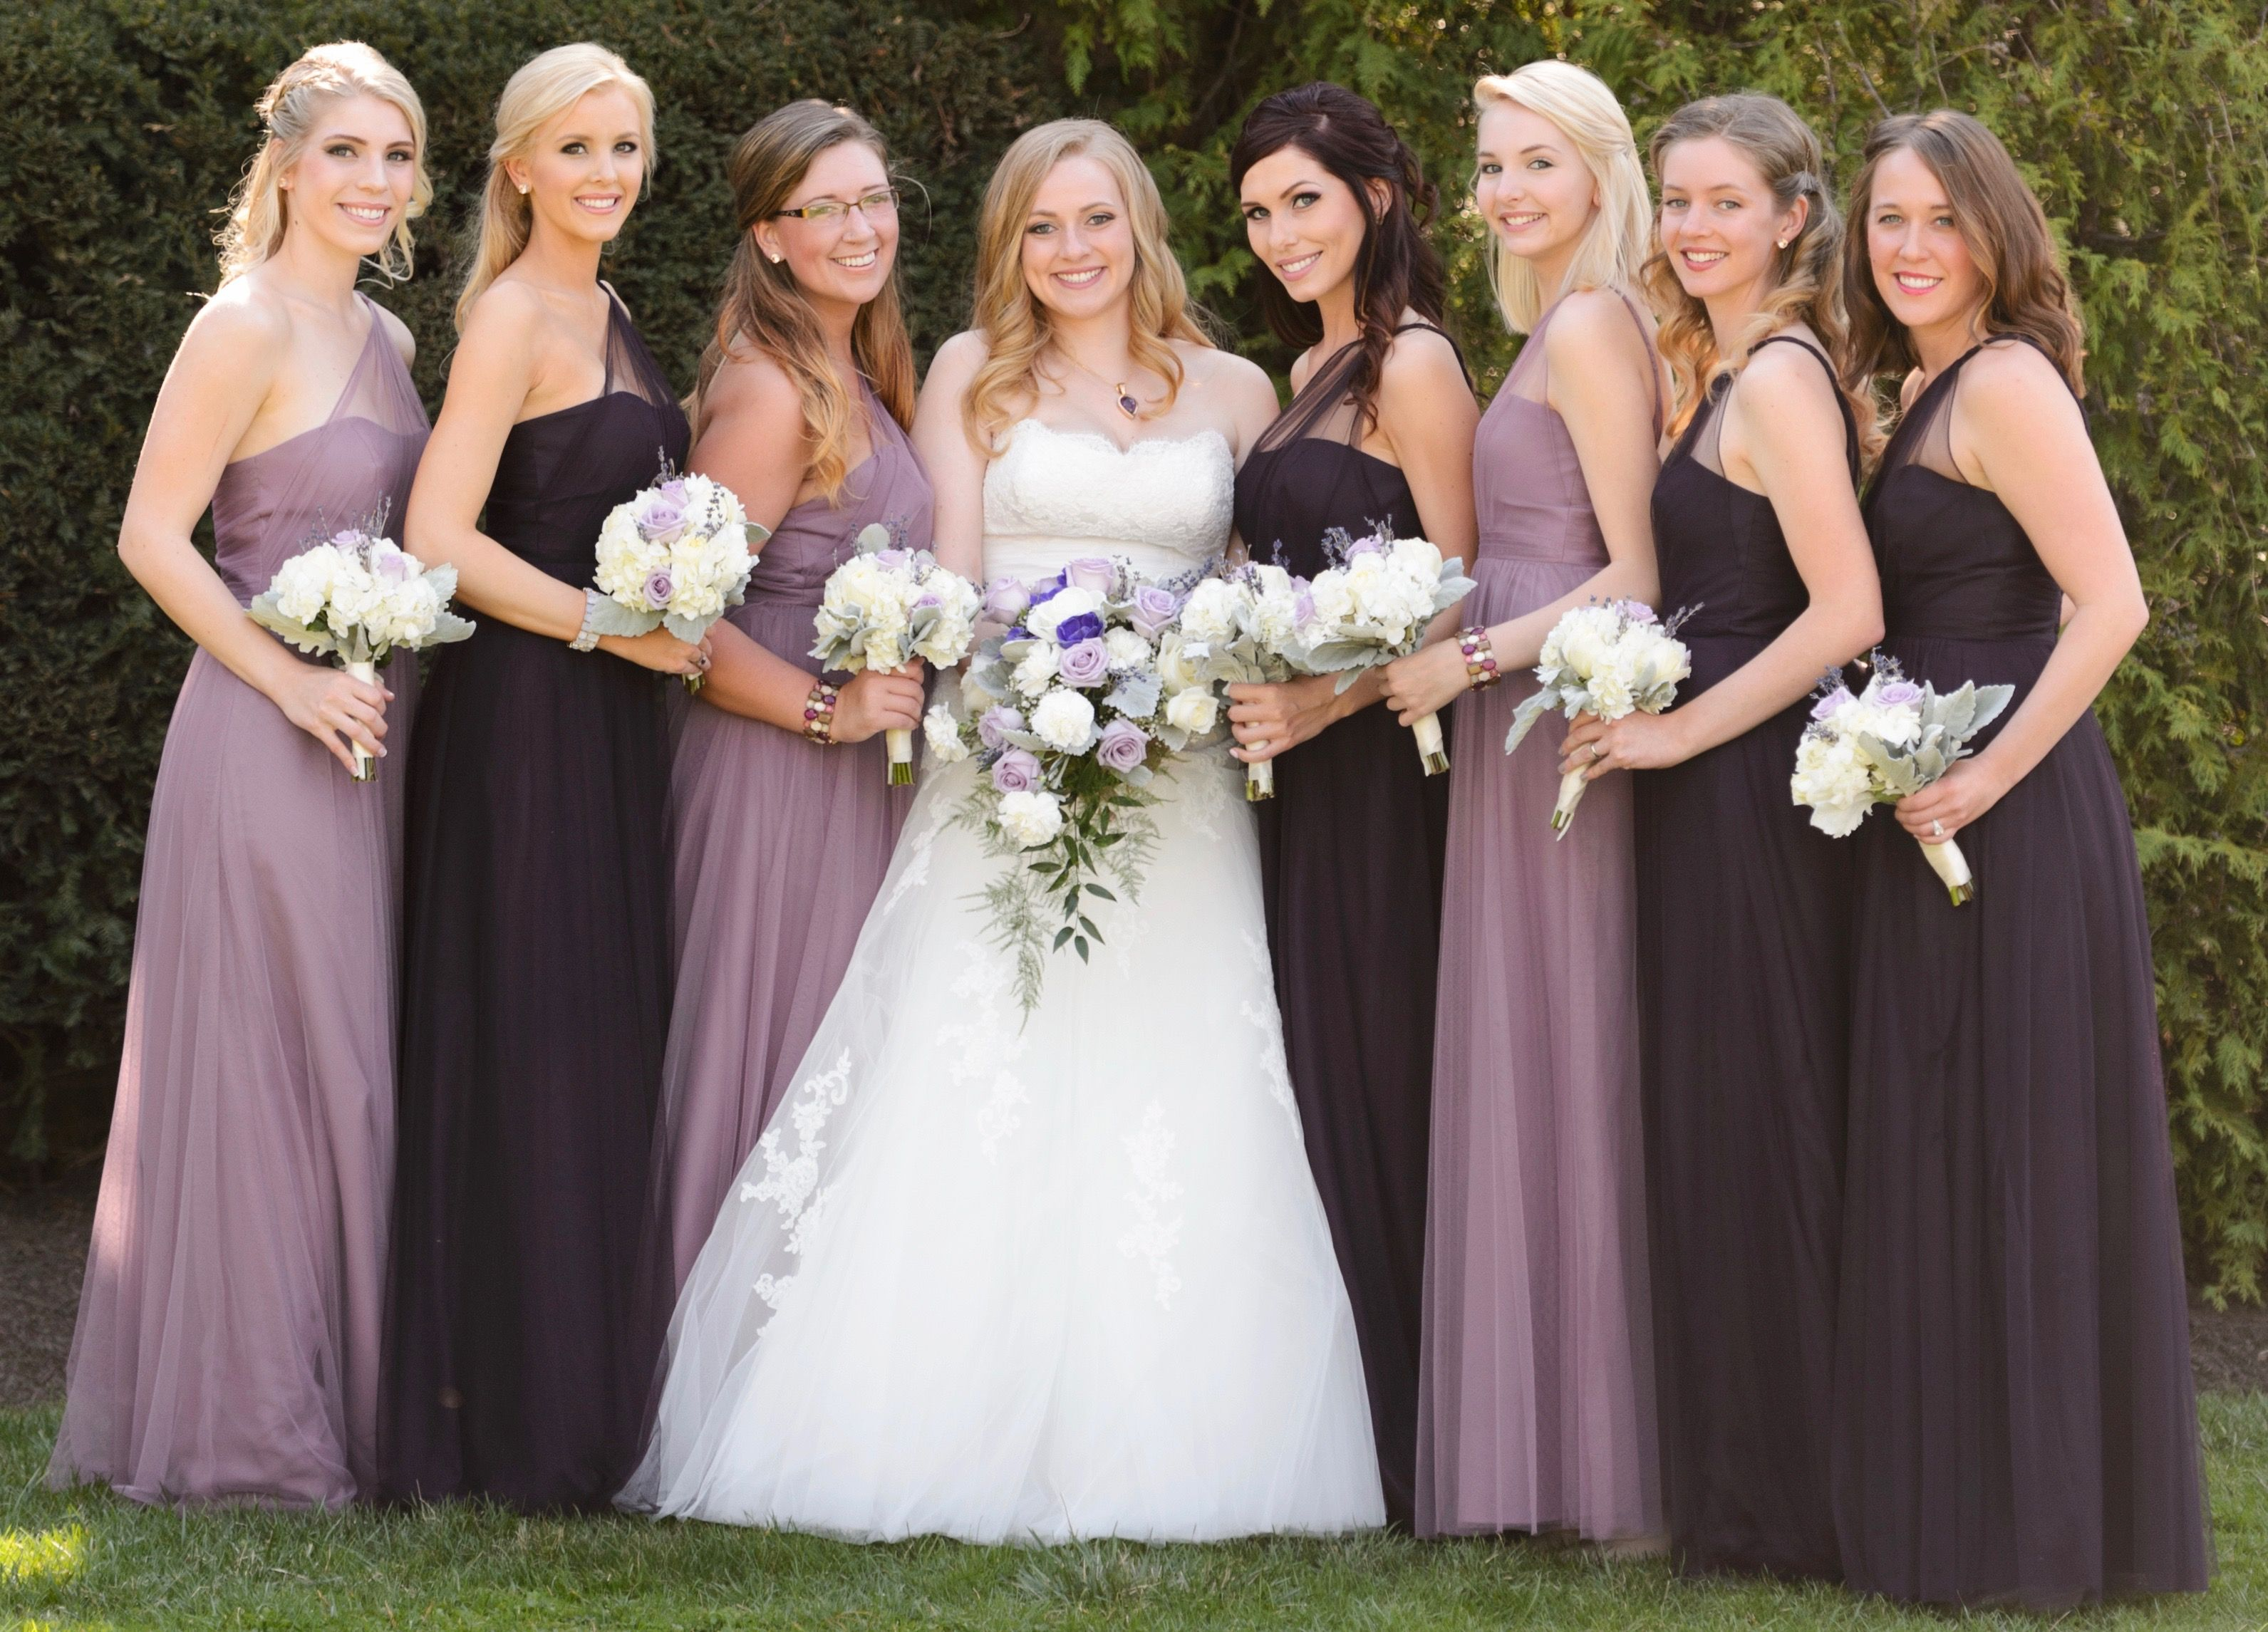 Bridesmaids in alfred angelo modern vintage style 8615l in plum bridesmaids in alfred angelo modern vintage style in plum and wisteria lavender purple eggplant dresses ombrellifo Images